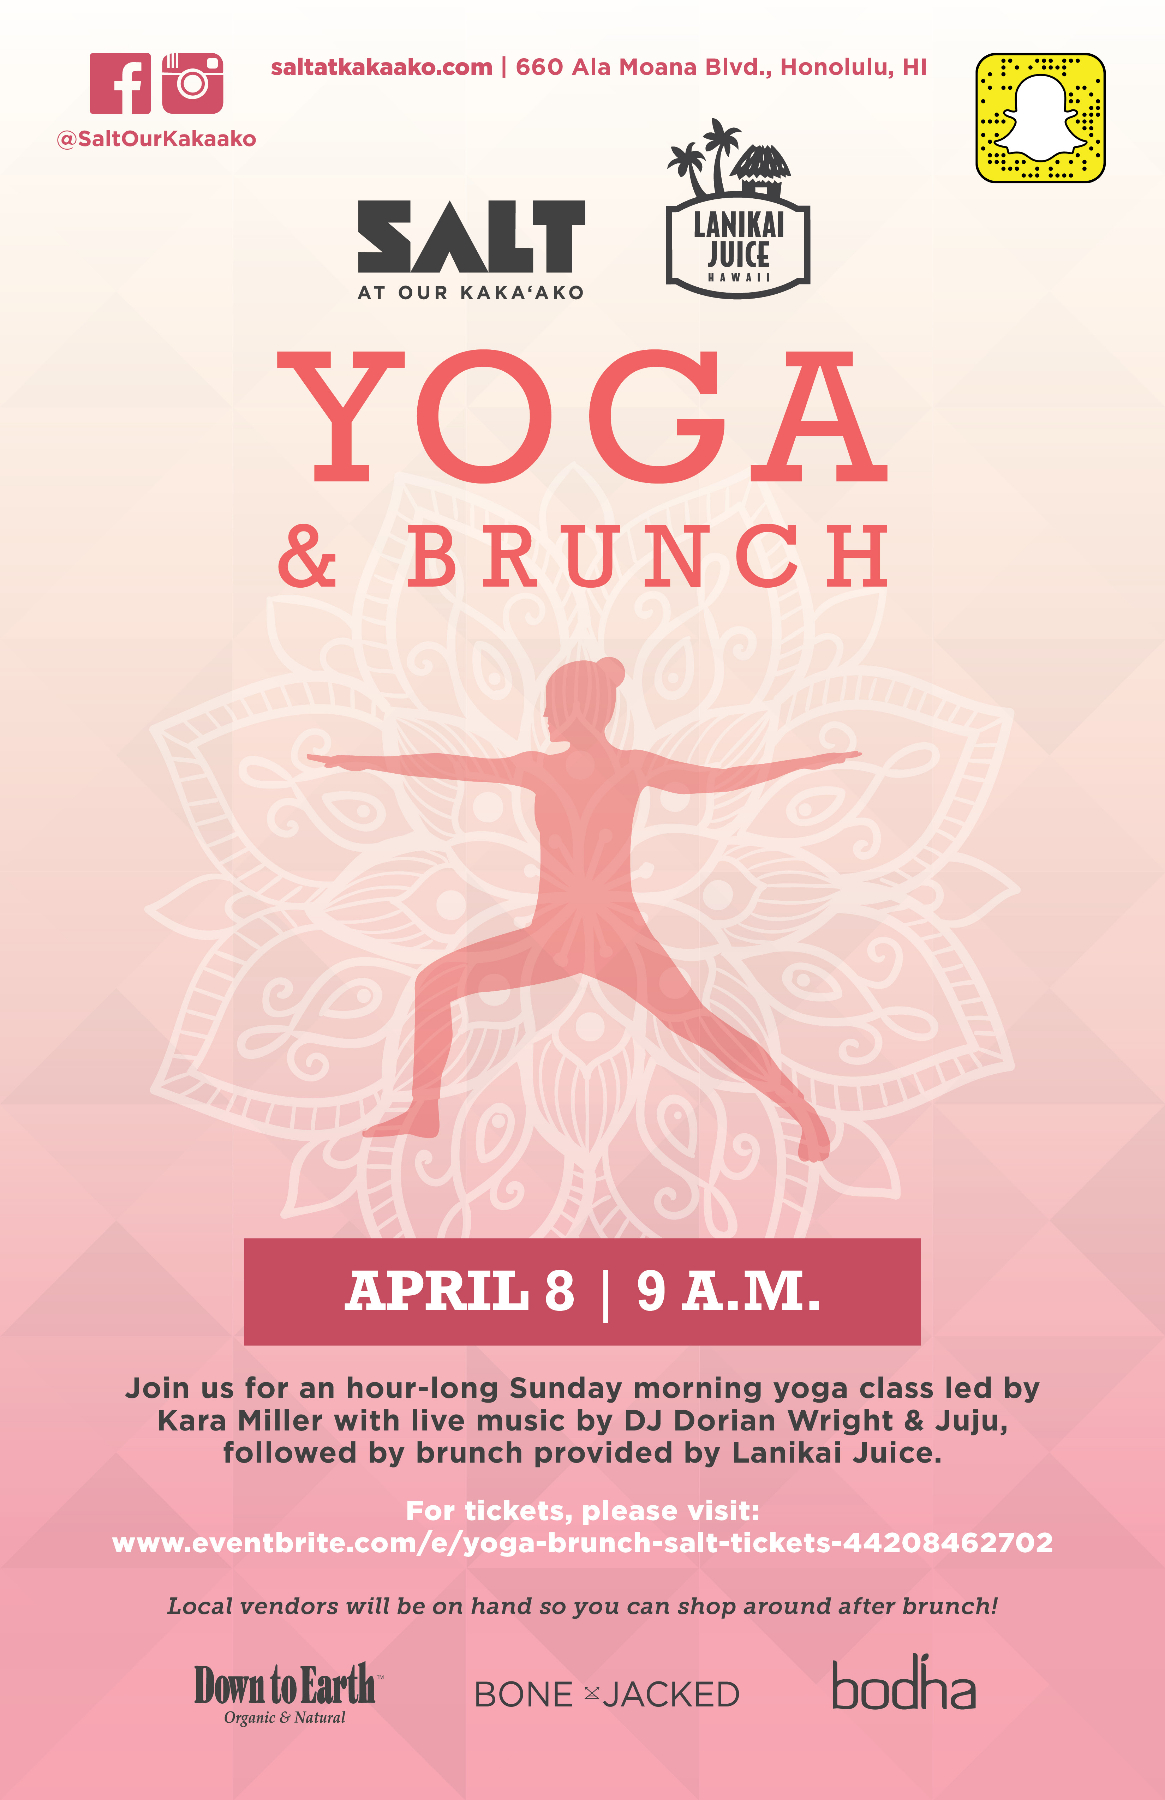 YOGA & BRUNCH AT SALT AT OUR KAKAʻAKO